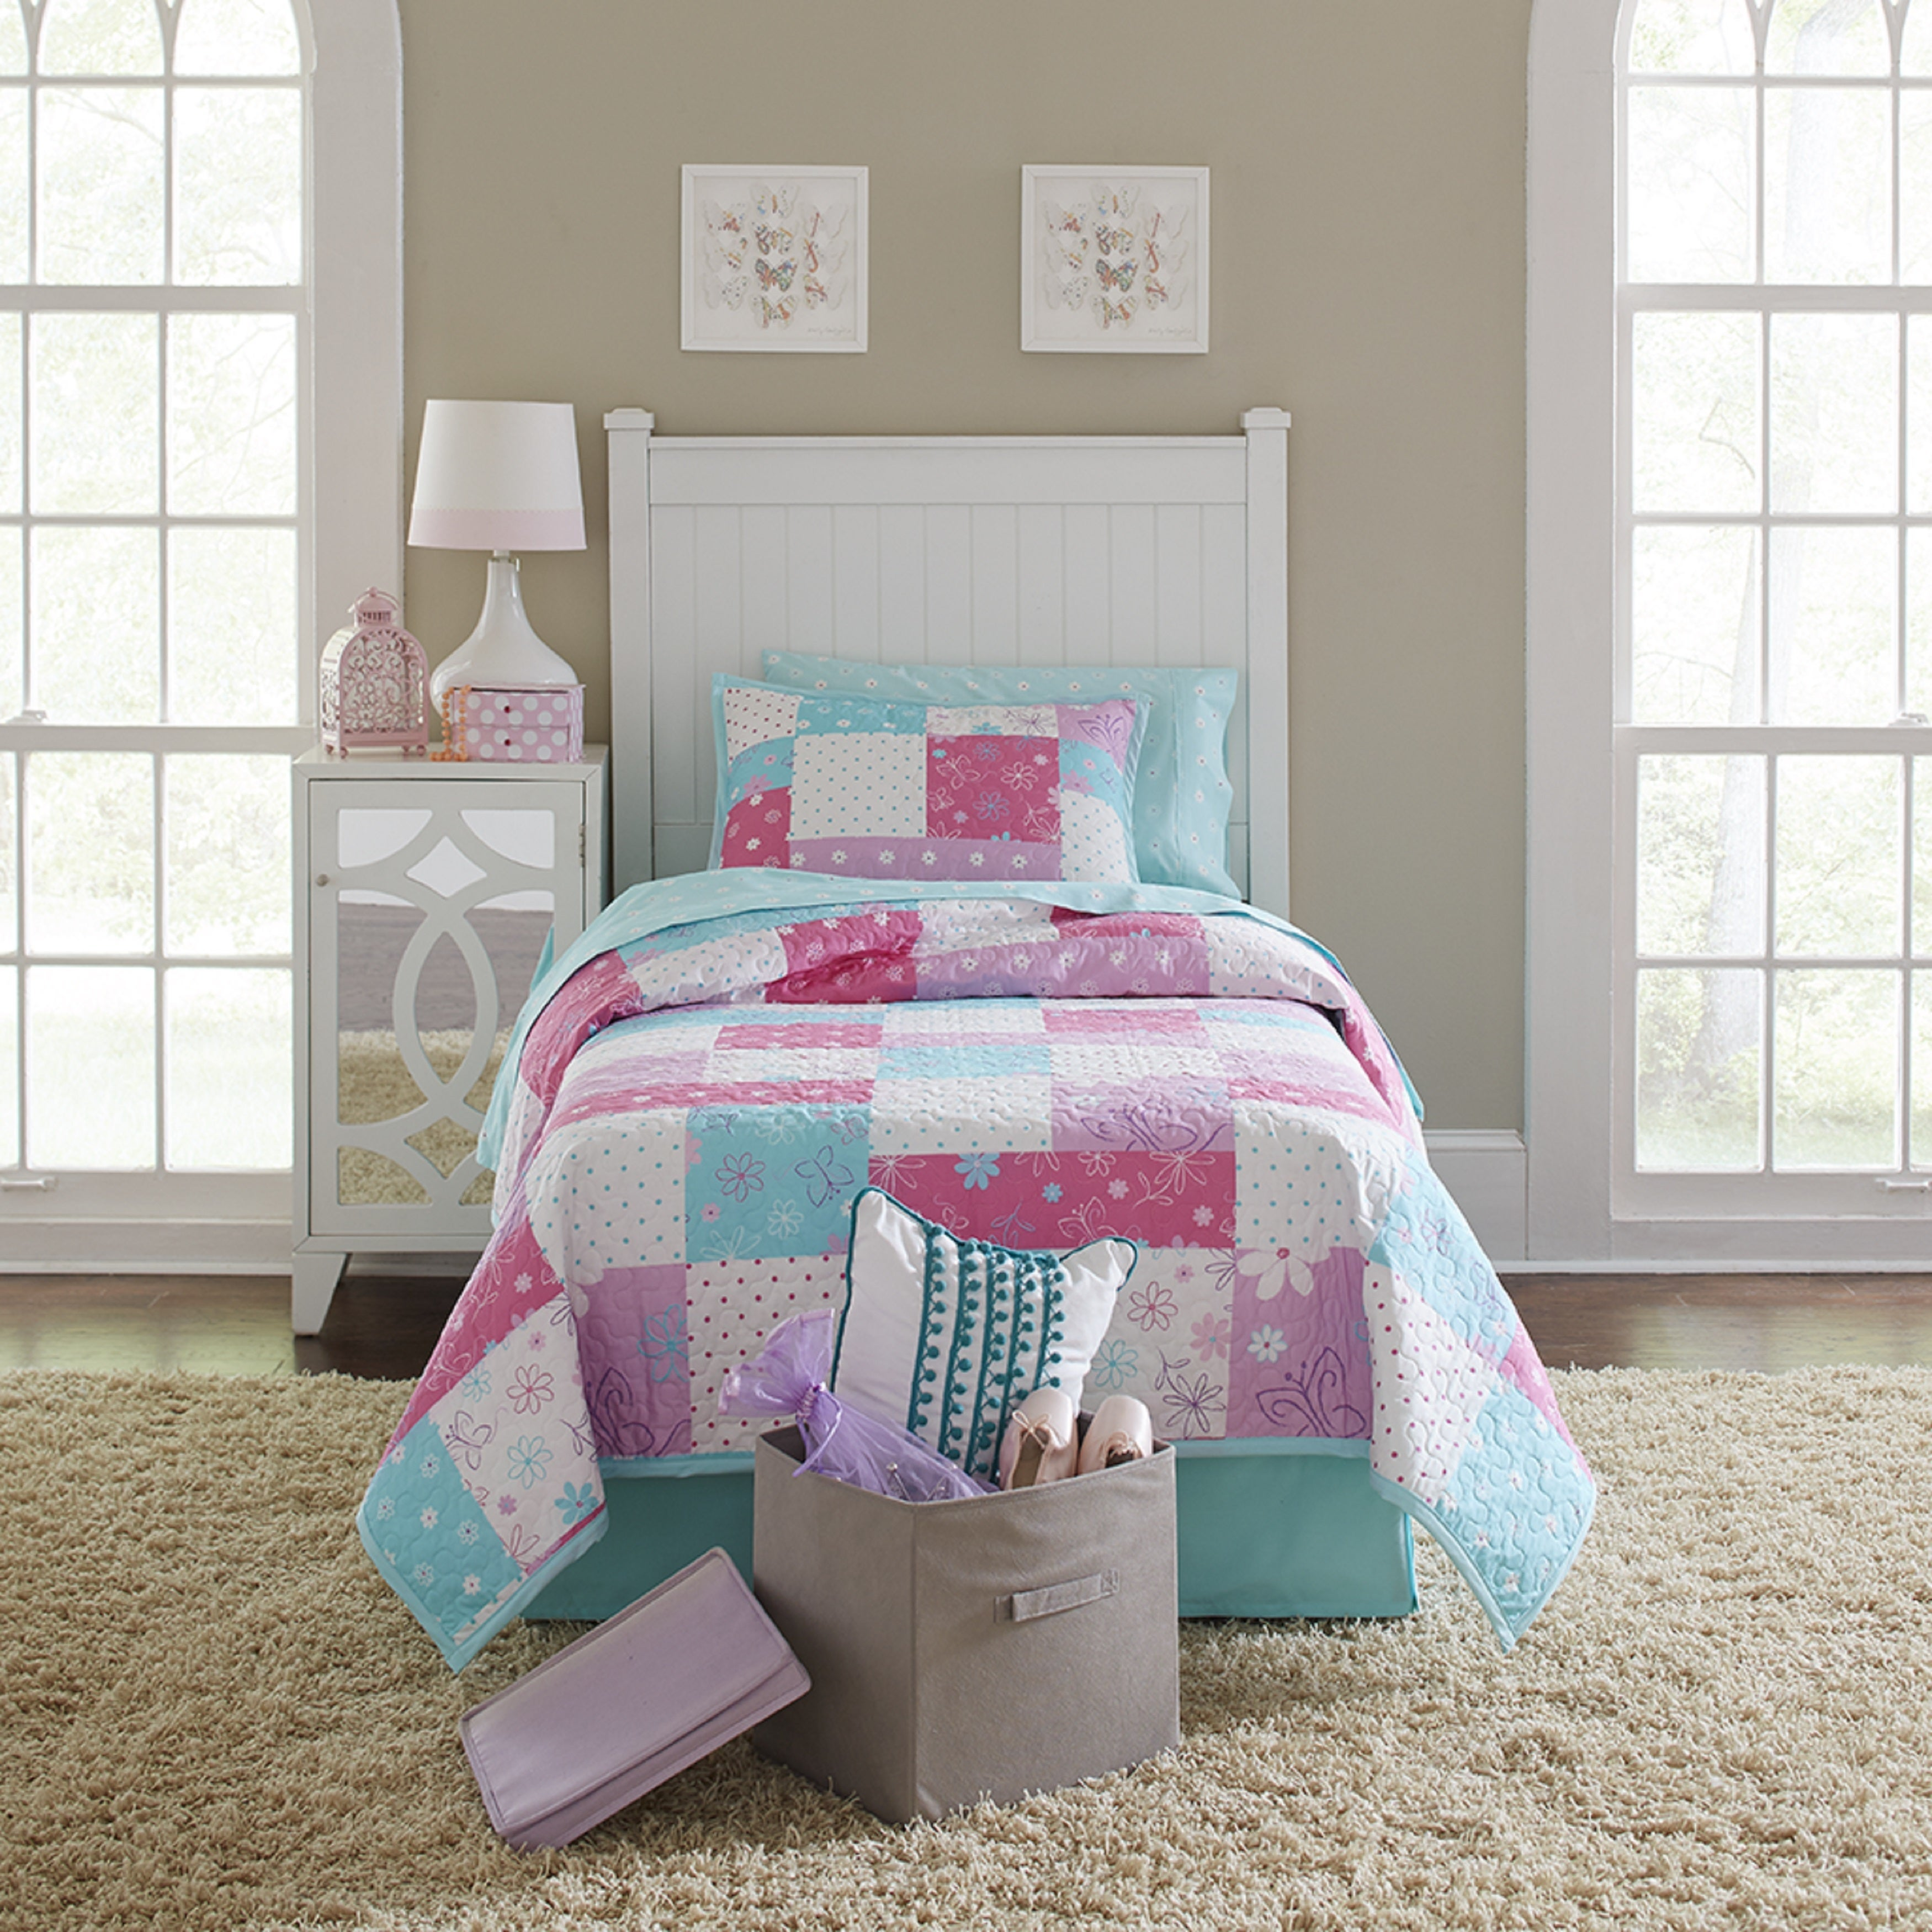 Superieur Lullaby Bedding Butterfly Garden 100% Cotton Printed 3 Piece Quilt Set    Free Shipping Today   Overstock.com   21178747